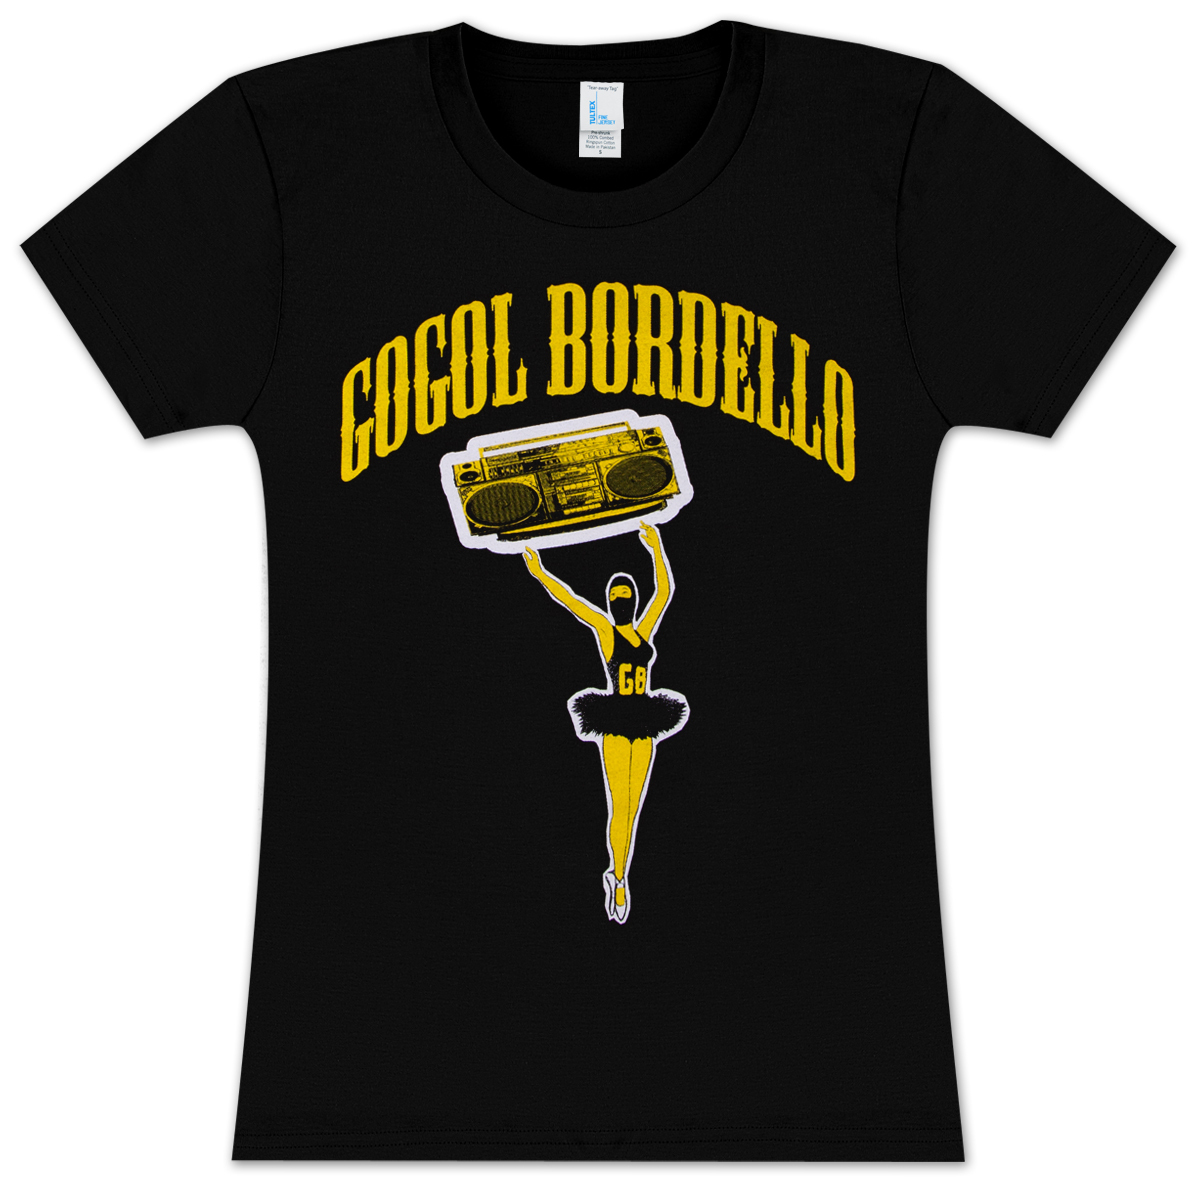 Gogol Bordello Ballerina T-Shirt - Ladies